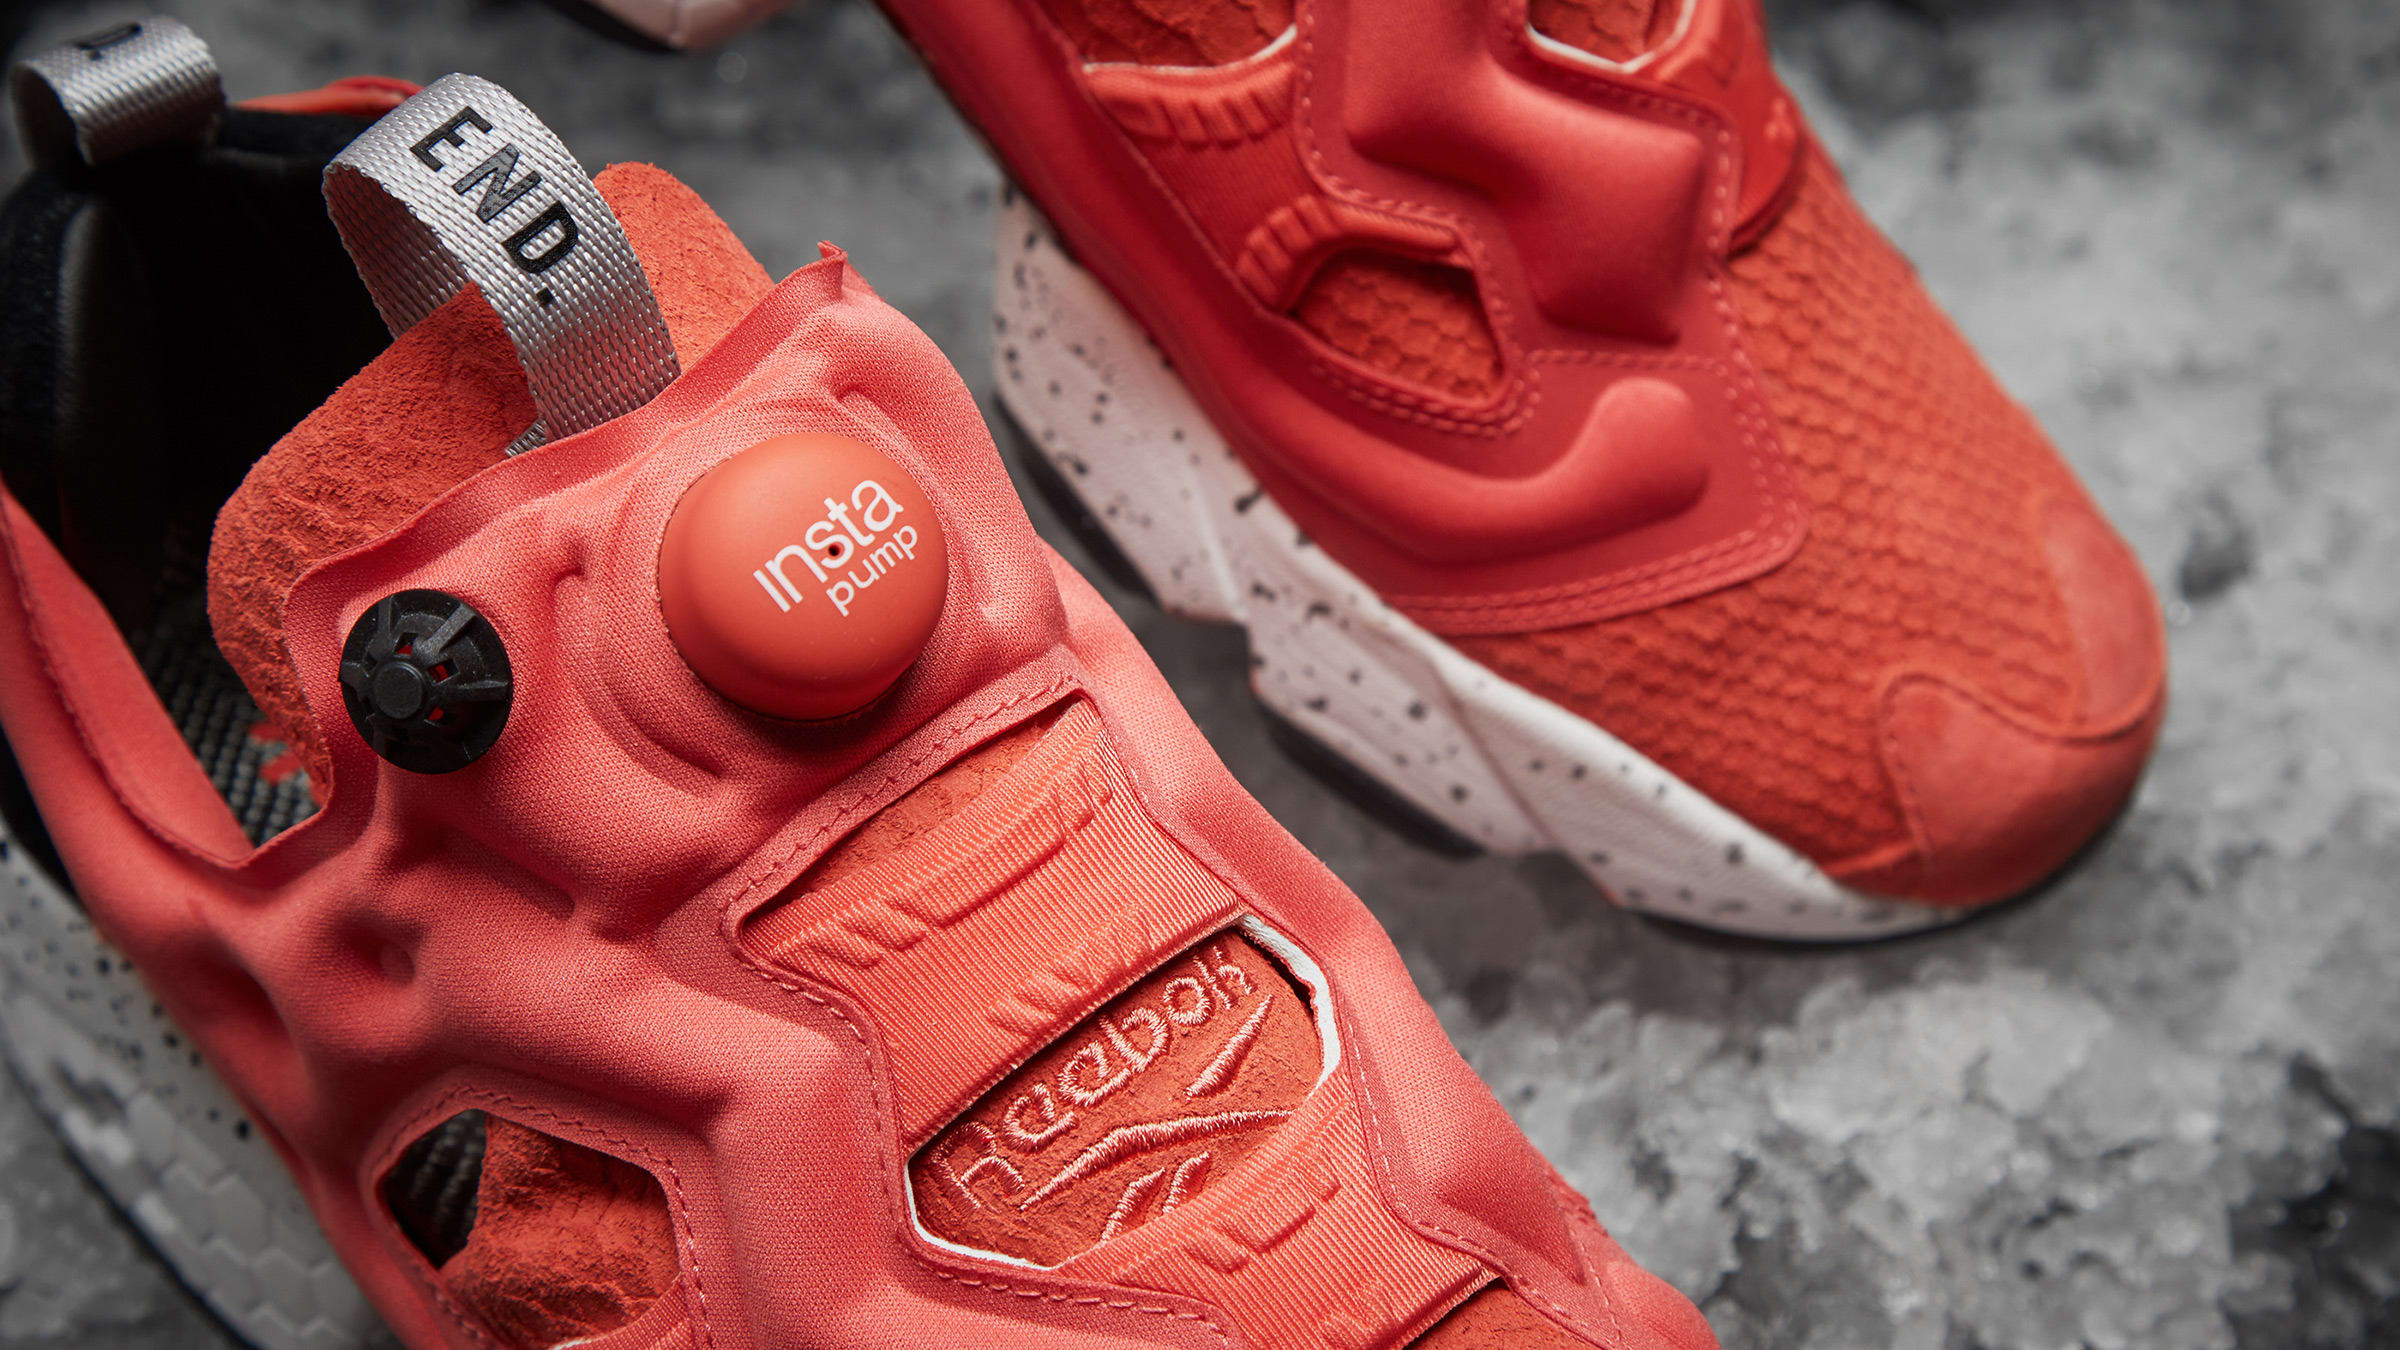 e513d29a END. x Reebok Instapump Fury OG 'Pink Salmon' Rosette, Black & White | END.